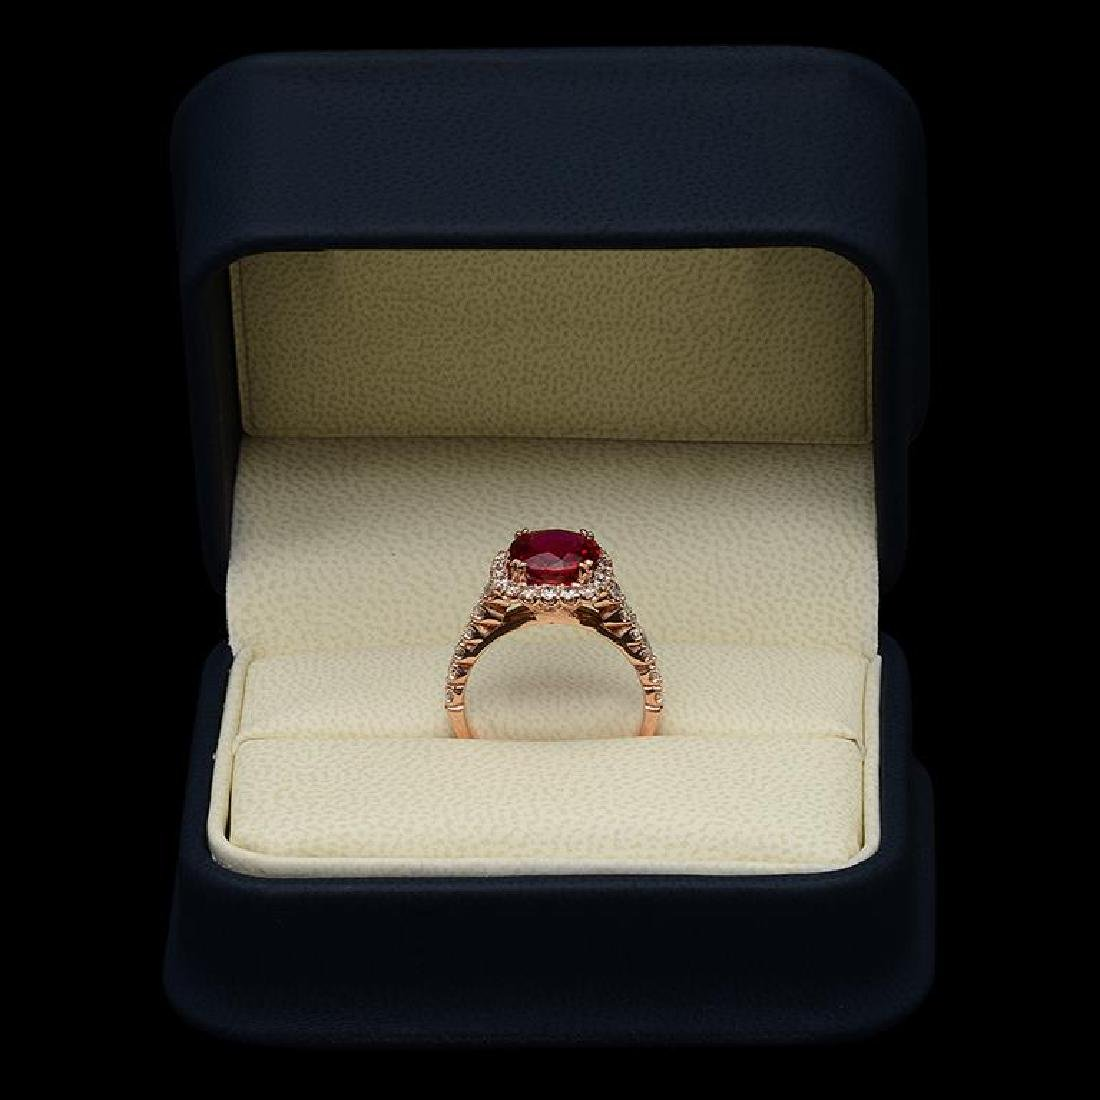 14K Gold 3.28ct Ruby 1.26ct Diamond Ring - 3